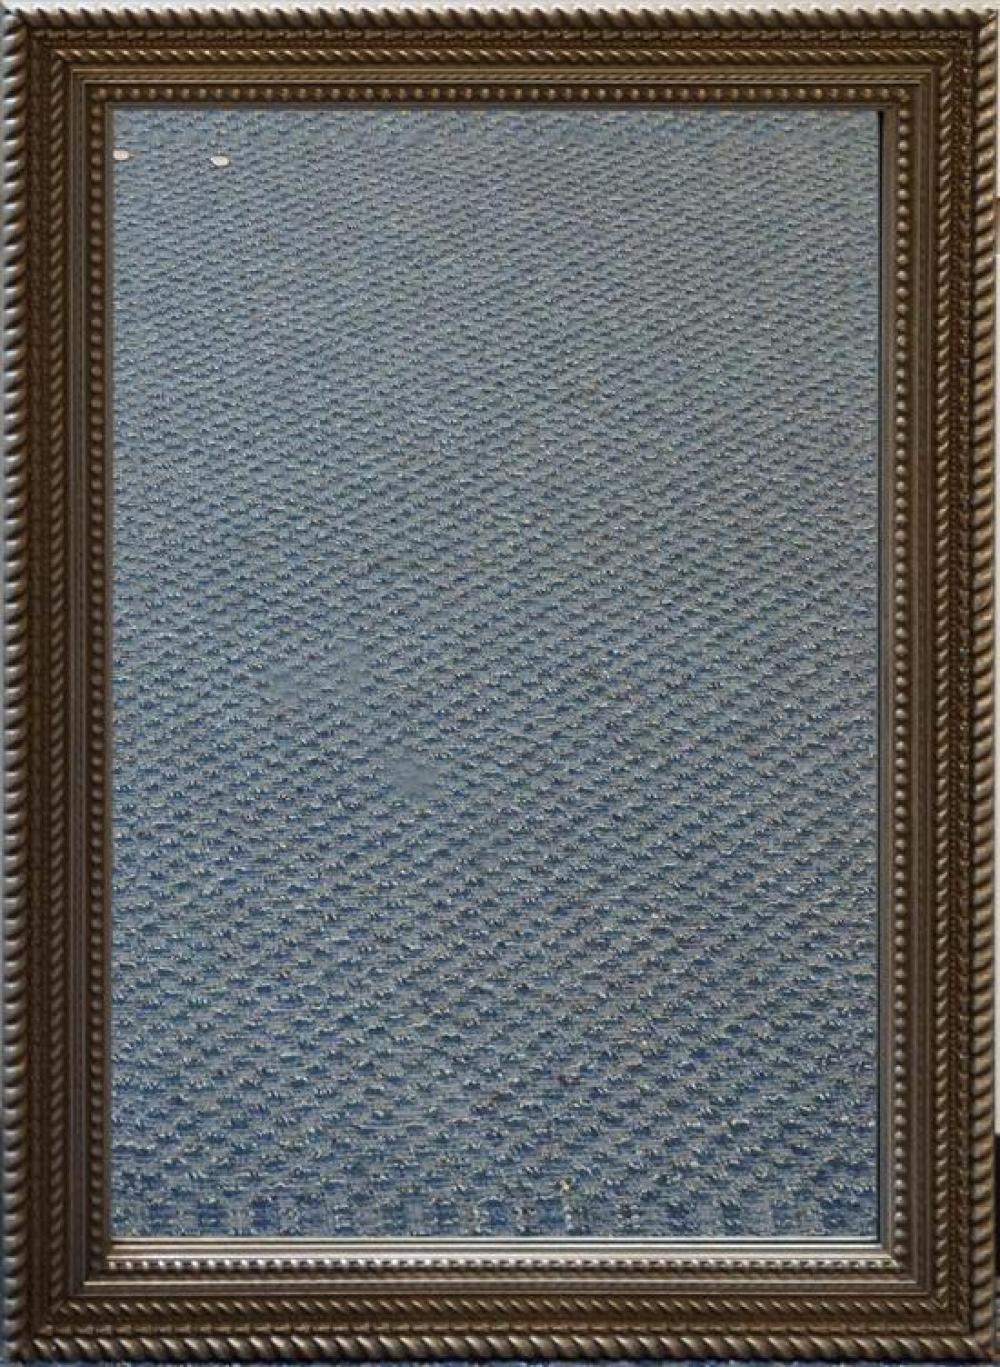 Contemporary Silvered Wood Frame Bevel Edge Mirror, 42 x 30 in